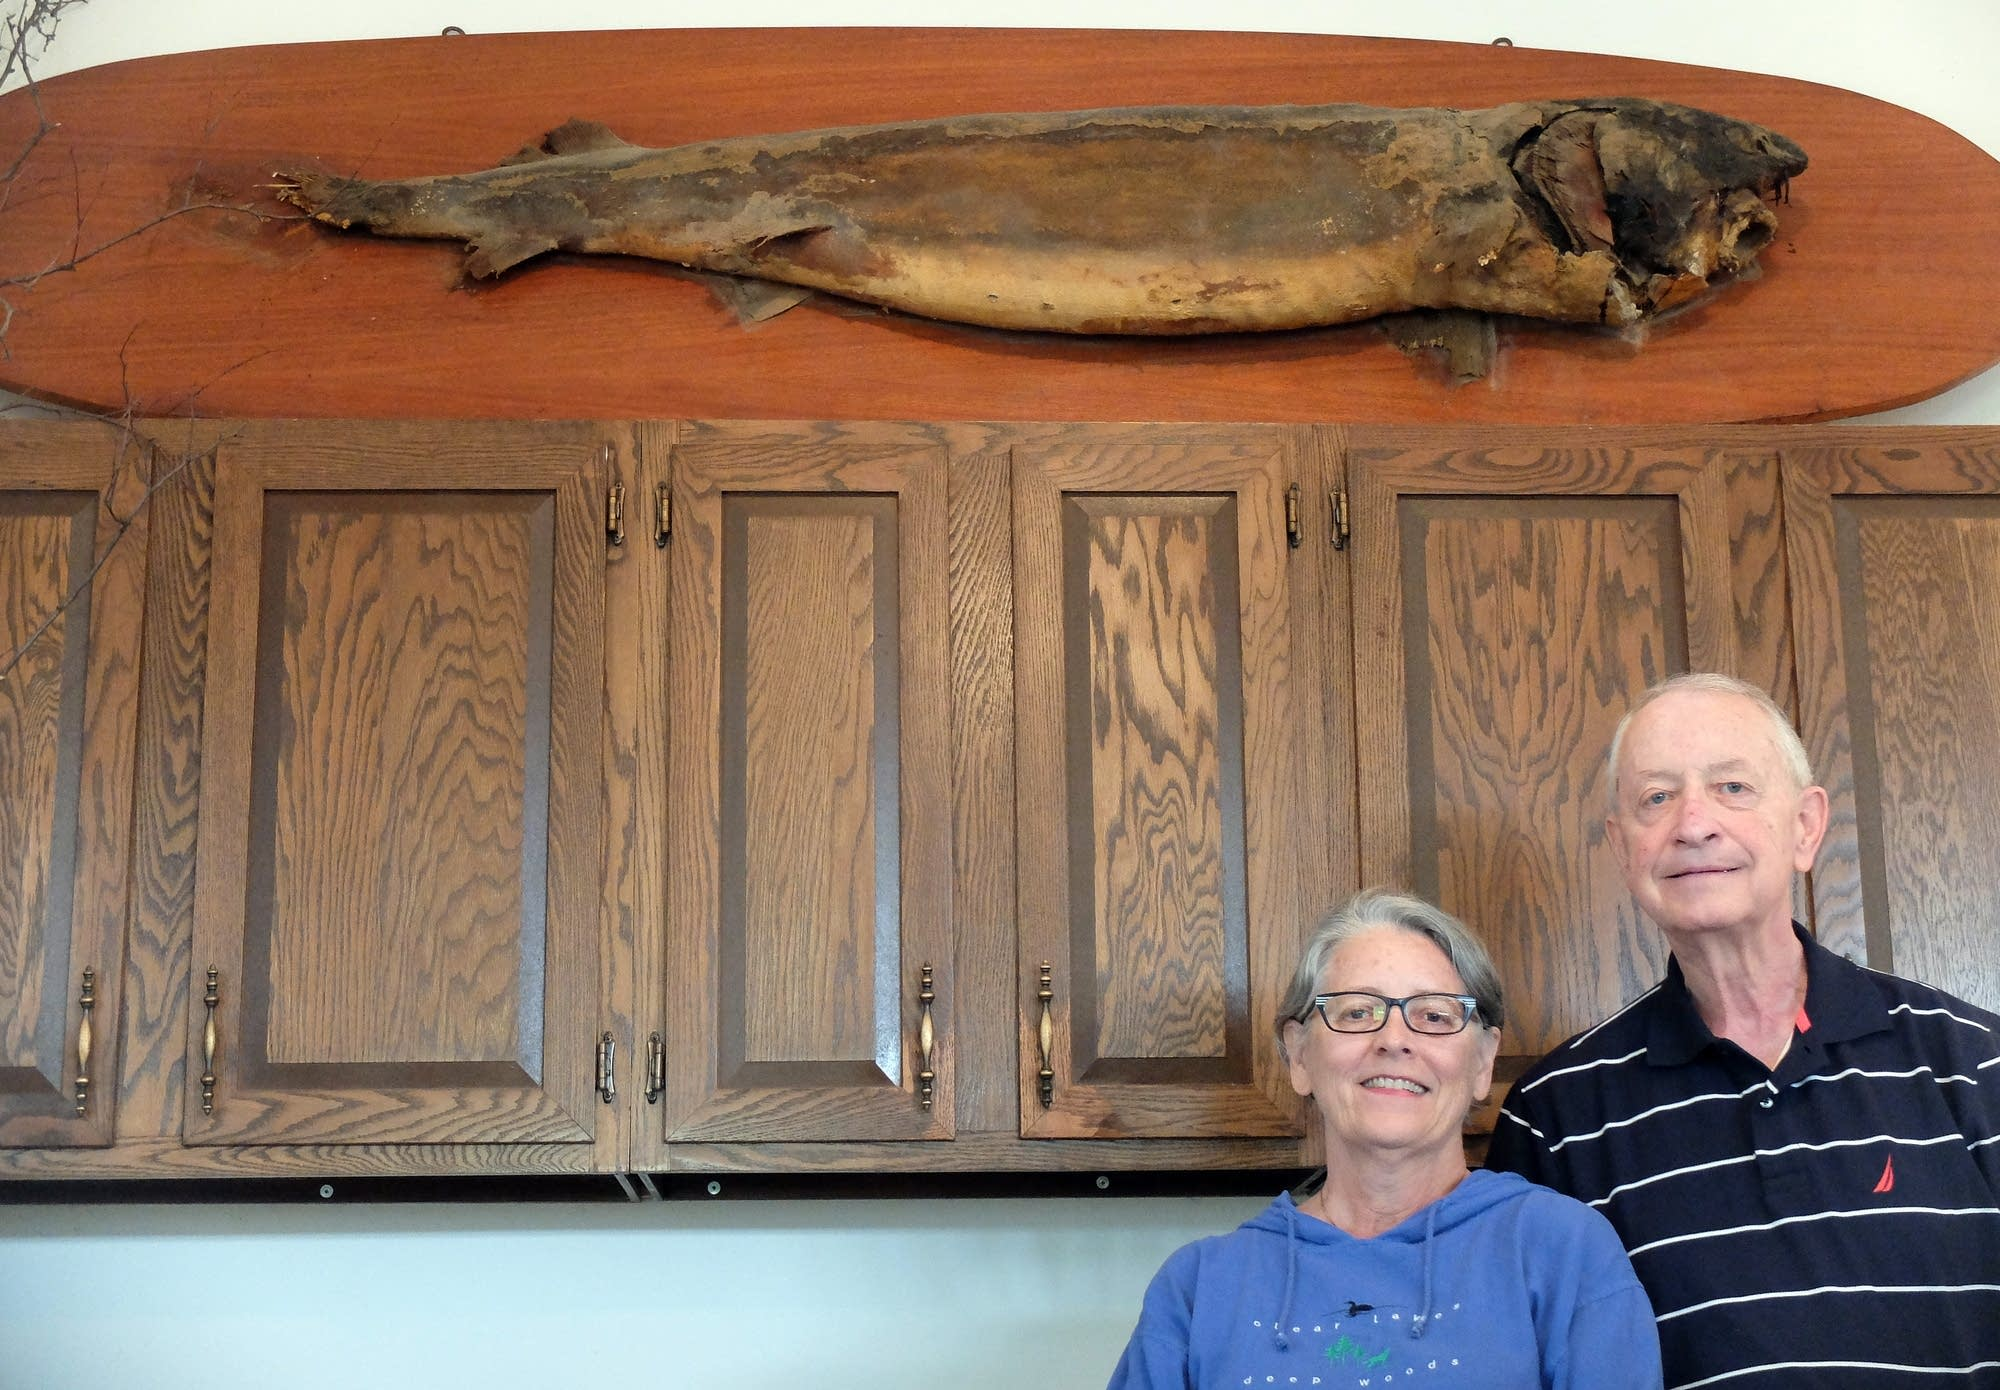 Karen and John Borg stand beneath the original mount of the 1948 sturgeon.